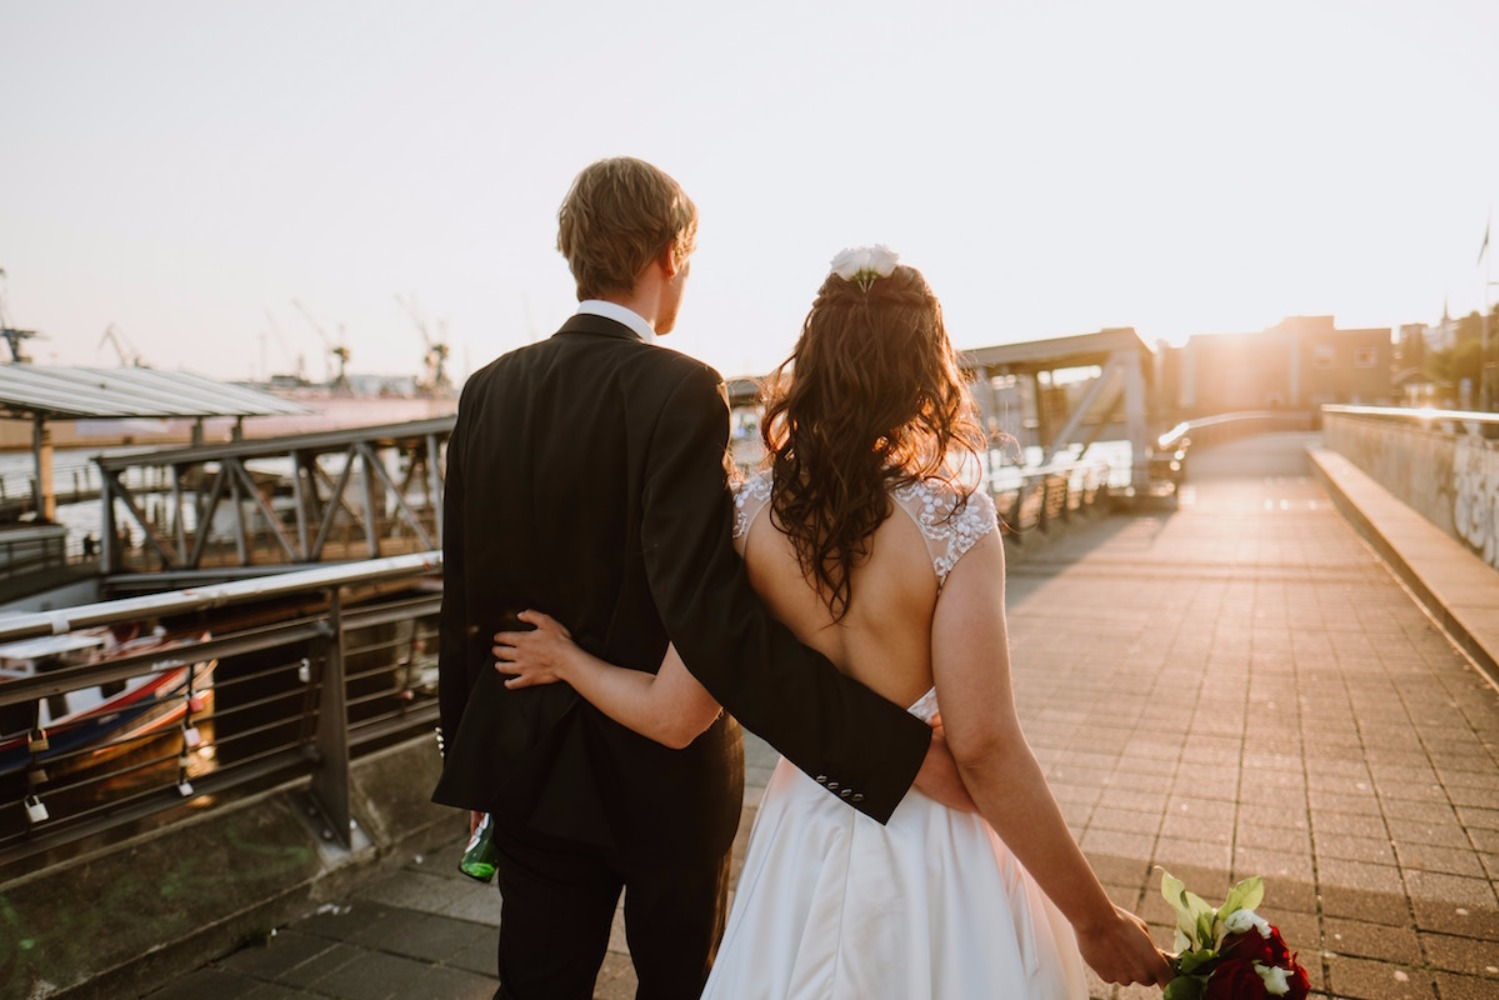 How to Handle Your Fiancé's (Girl) Friend Coming to the Wedding